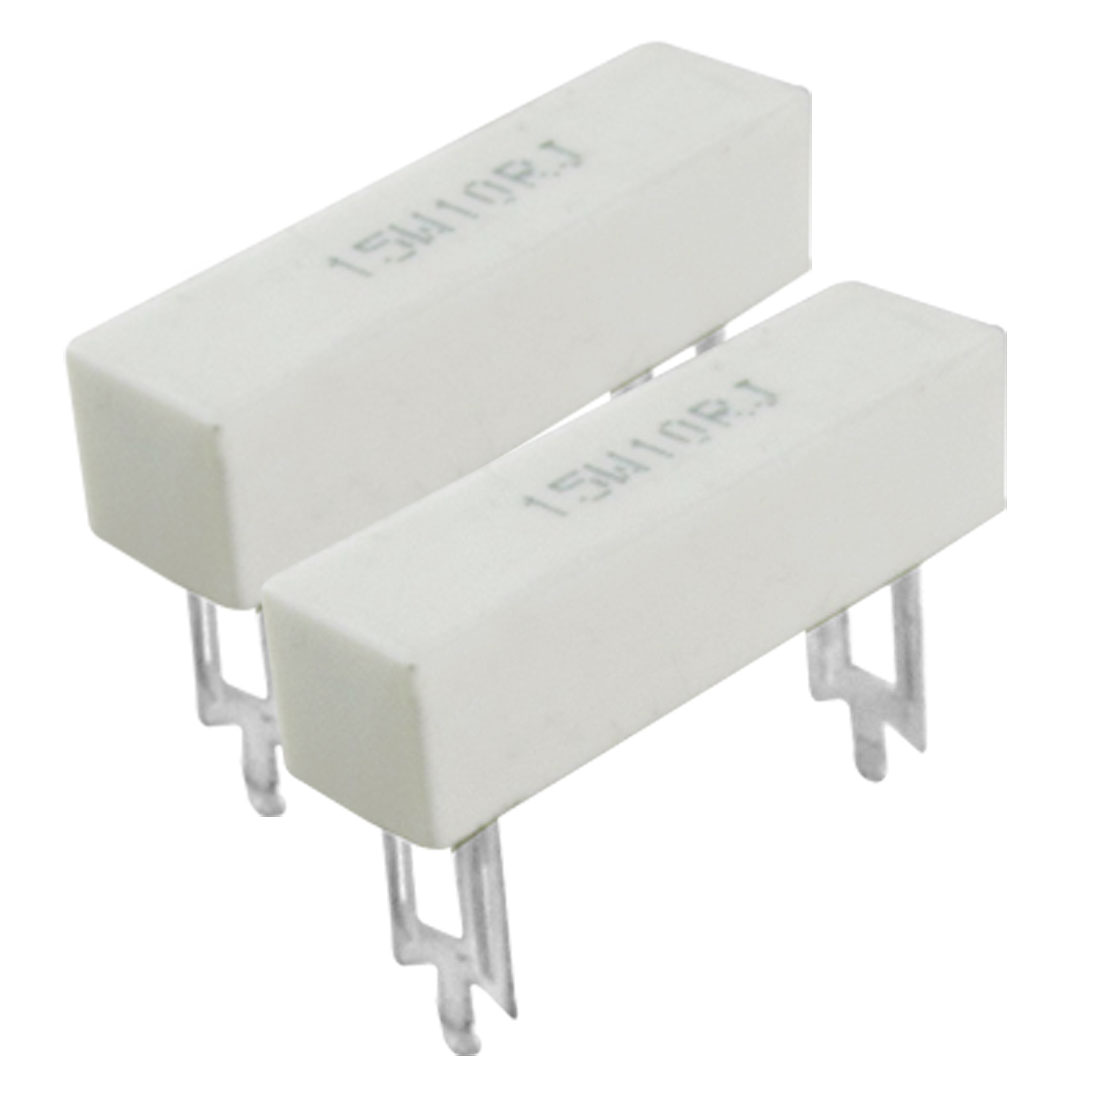 2 Pcs 15W 10 Ohm 5% DIP Wirewound Ceramic Cement Resistor